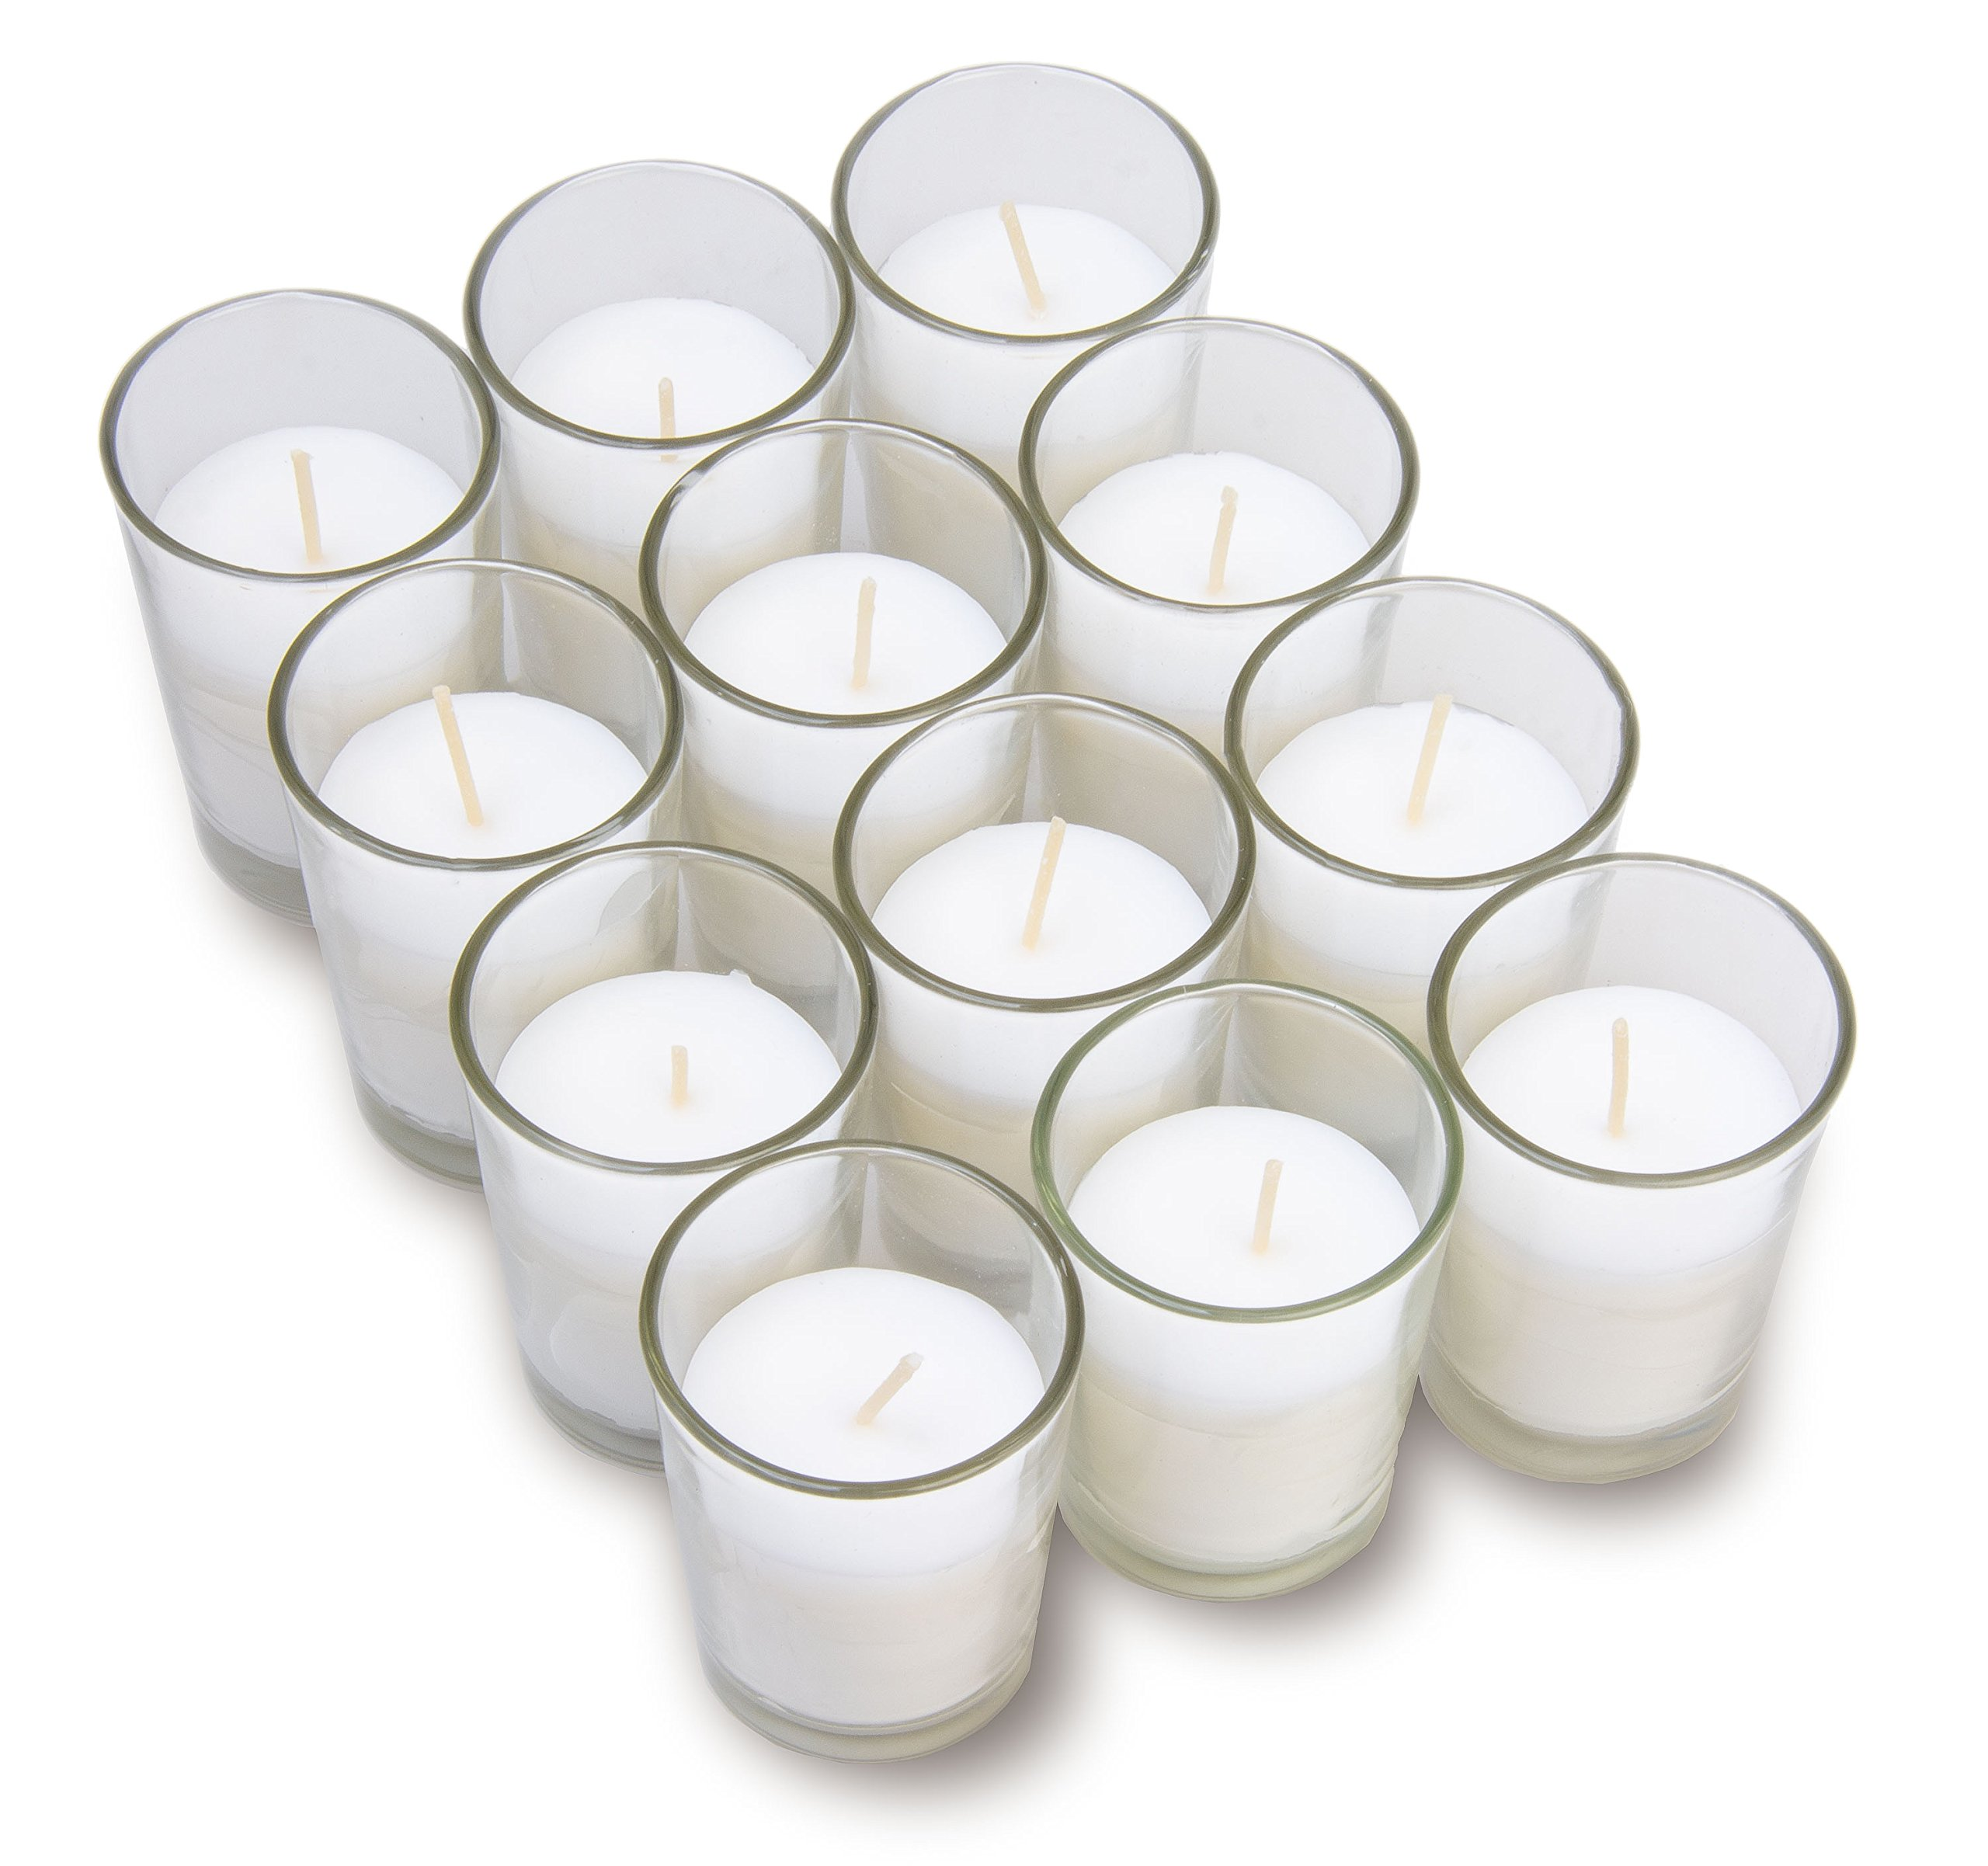 Harmonic Blossom Glass Votives 12 Pack - Premium White Unscented Votive Candles in Clear Elegant Holders - 15 Hour Long Lasting Burn Time - For Weddings, Parties and Event Decoration Centerpieces